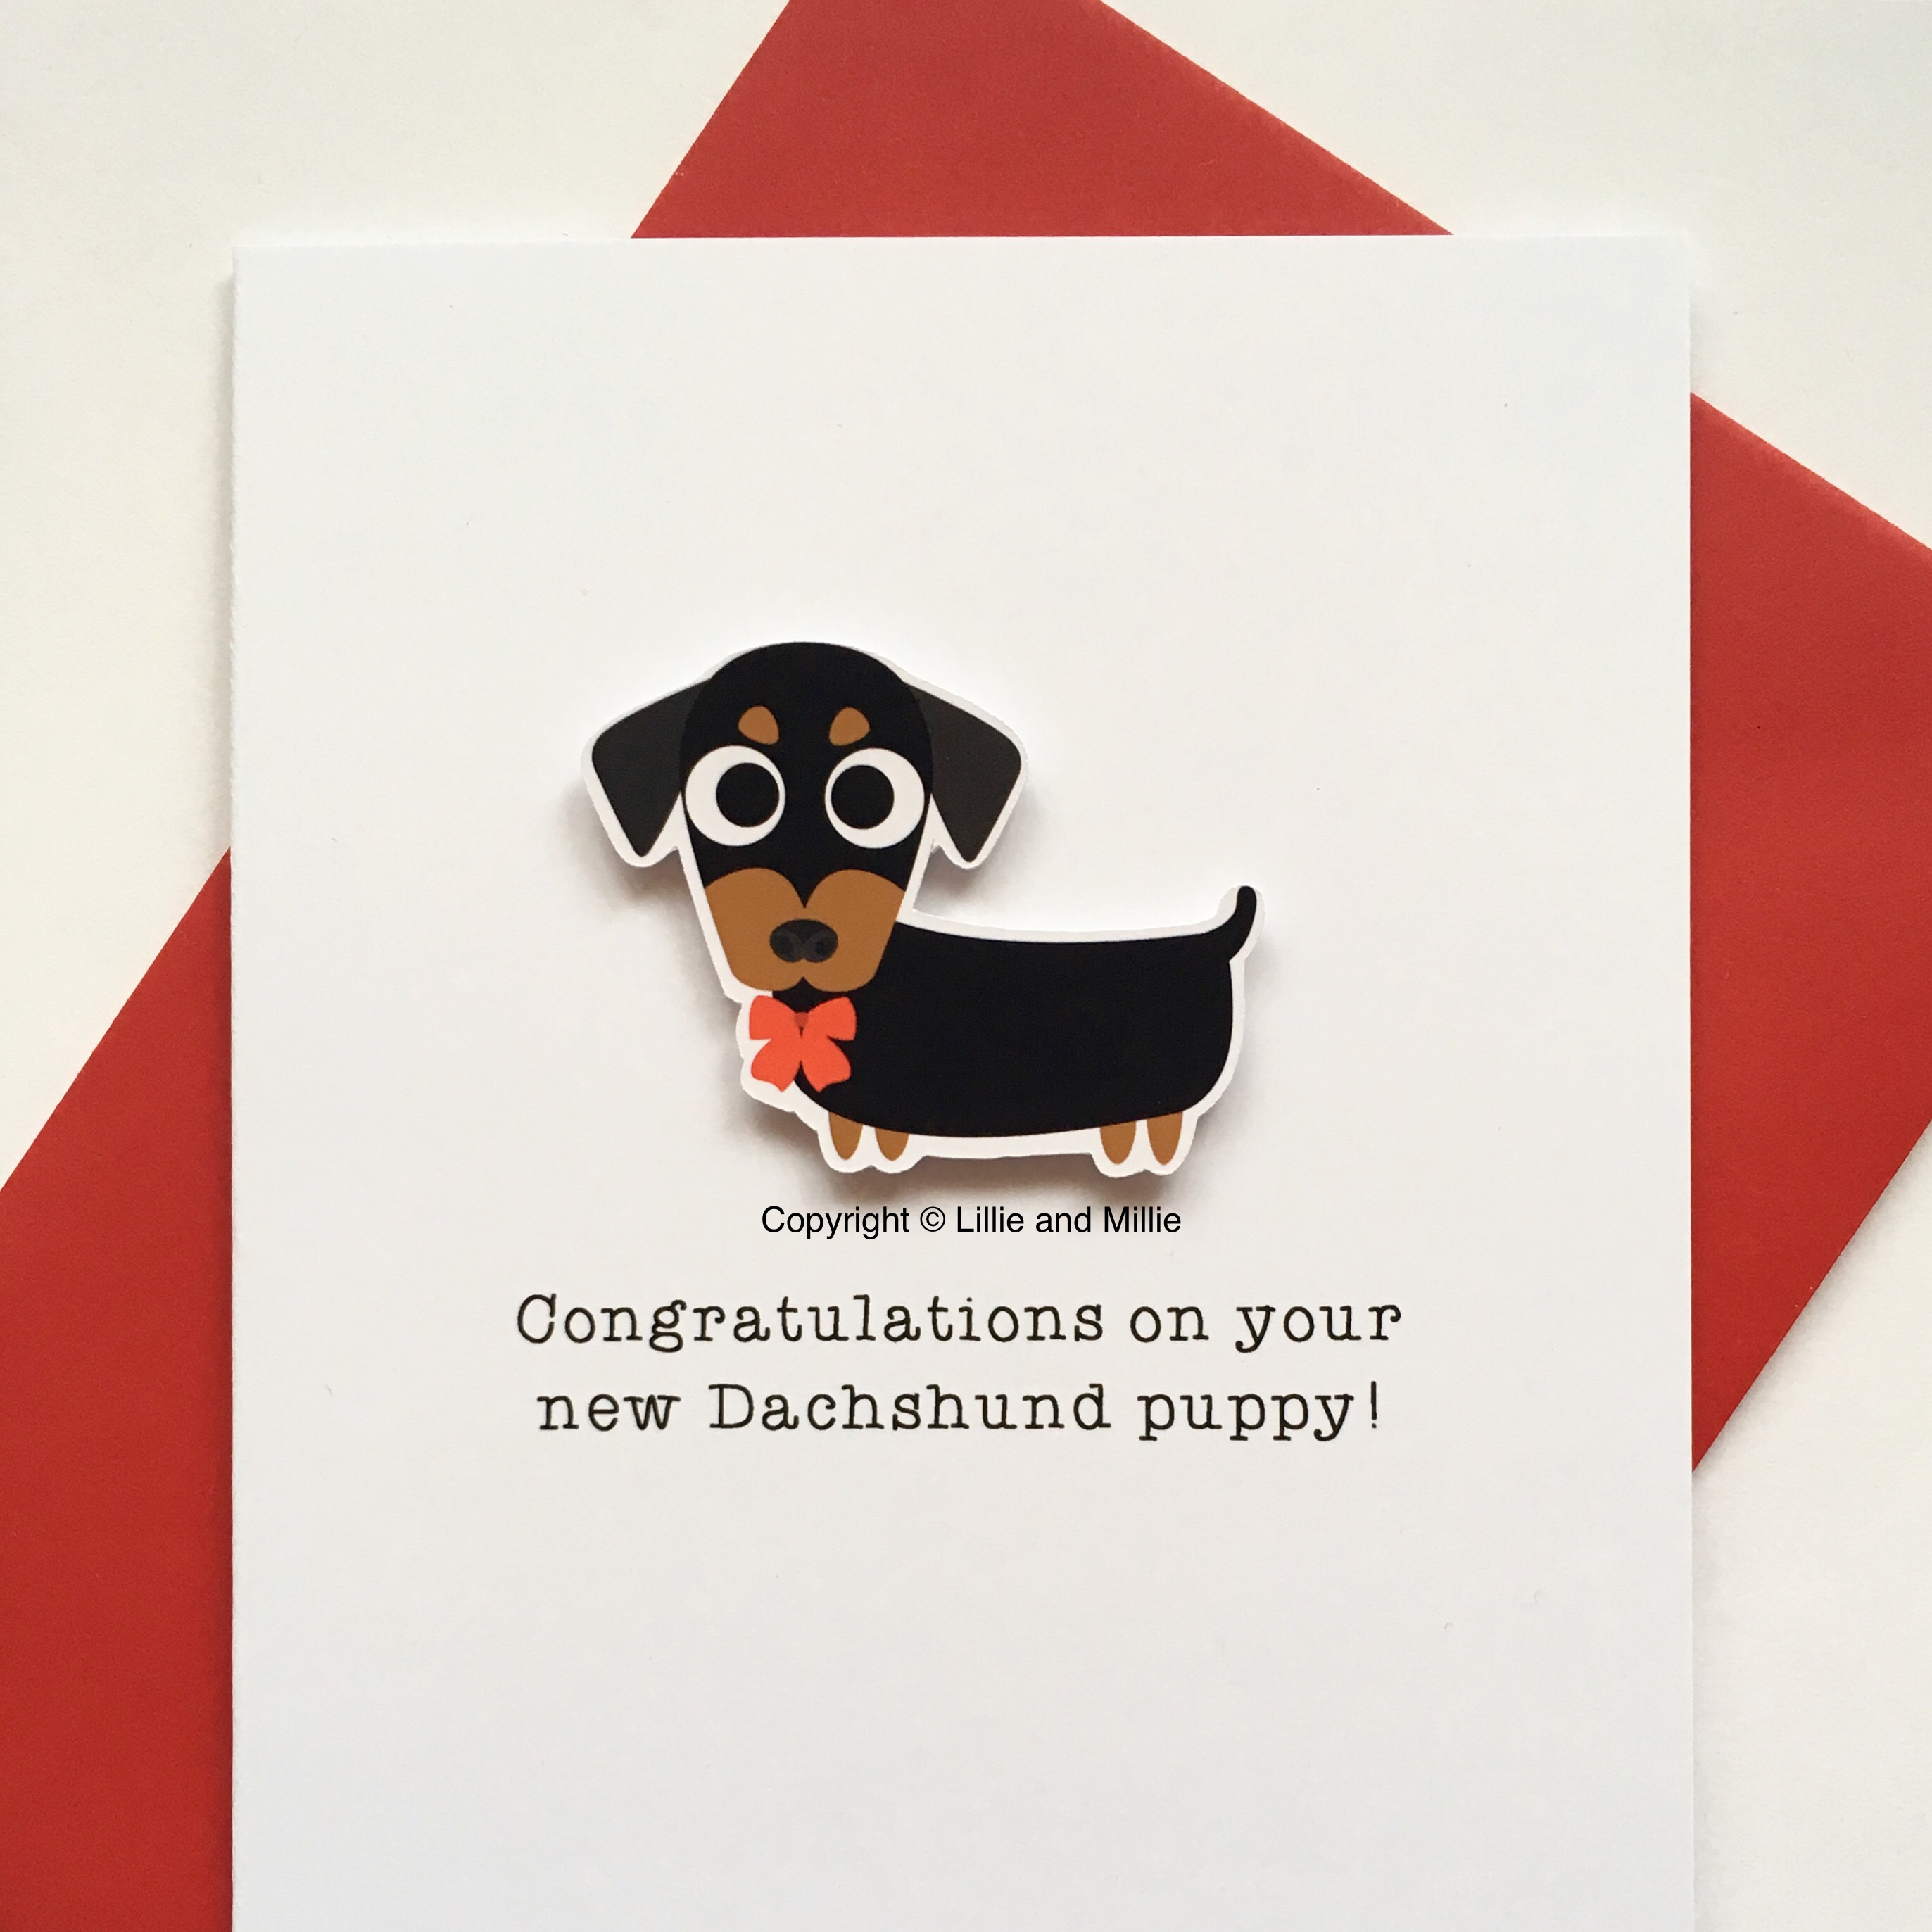 Cute and Cuddly Dachshund Red Bow Congratulations Puppy Card